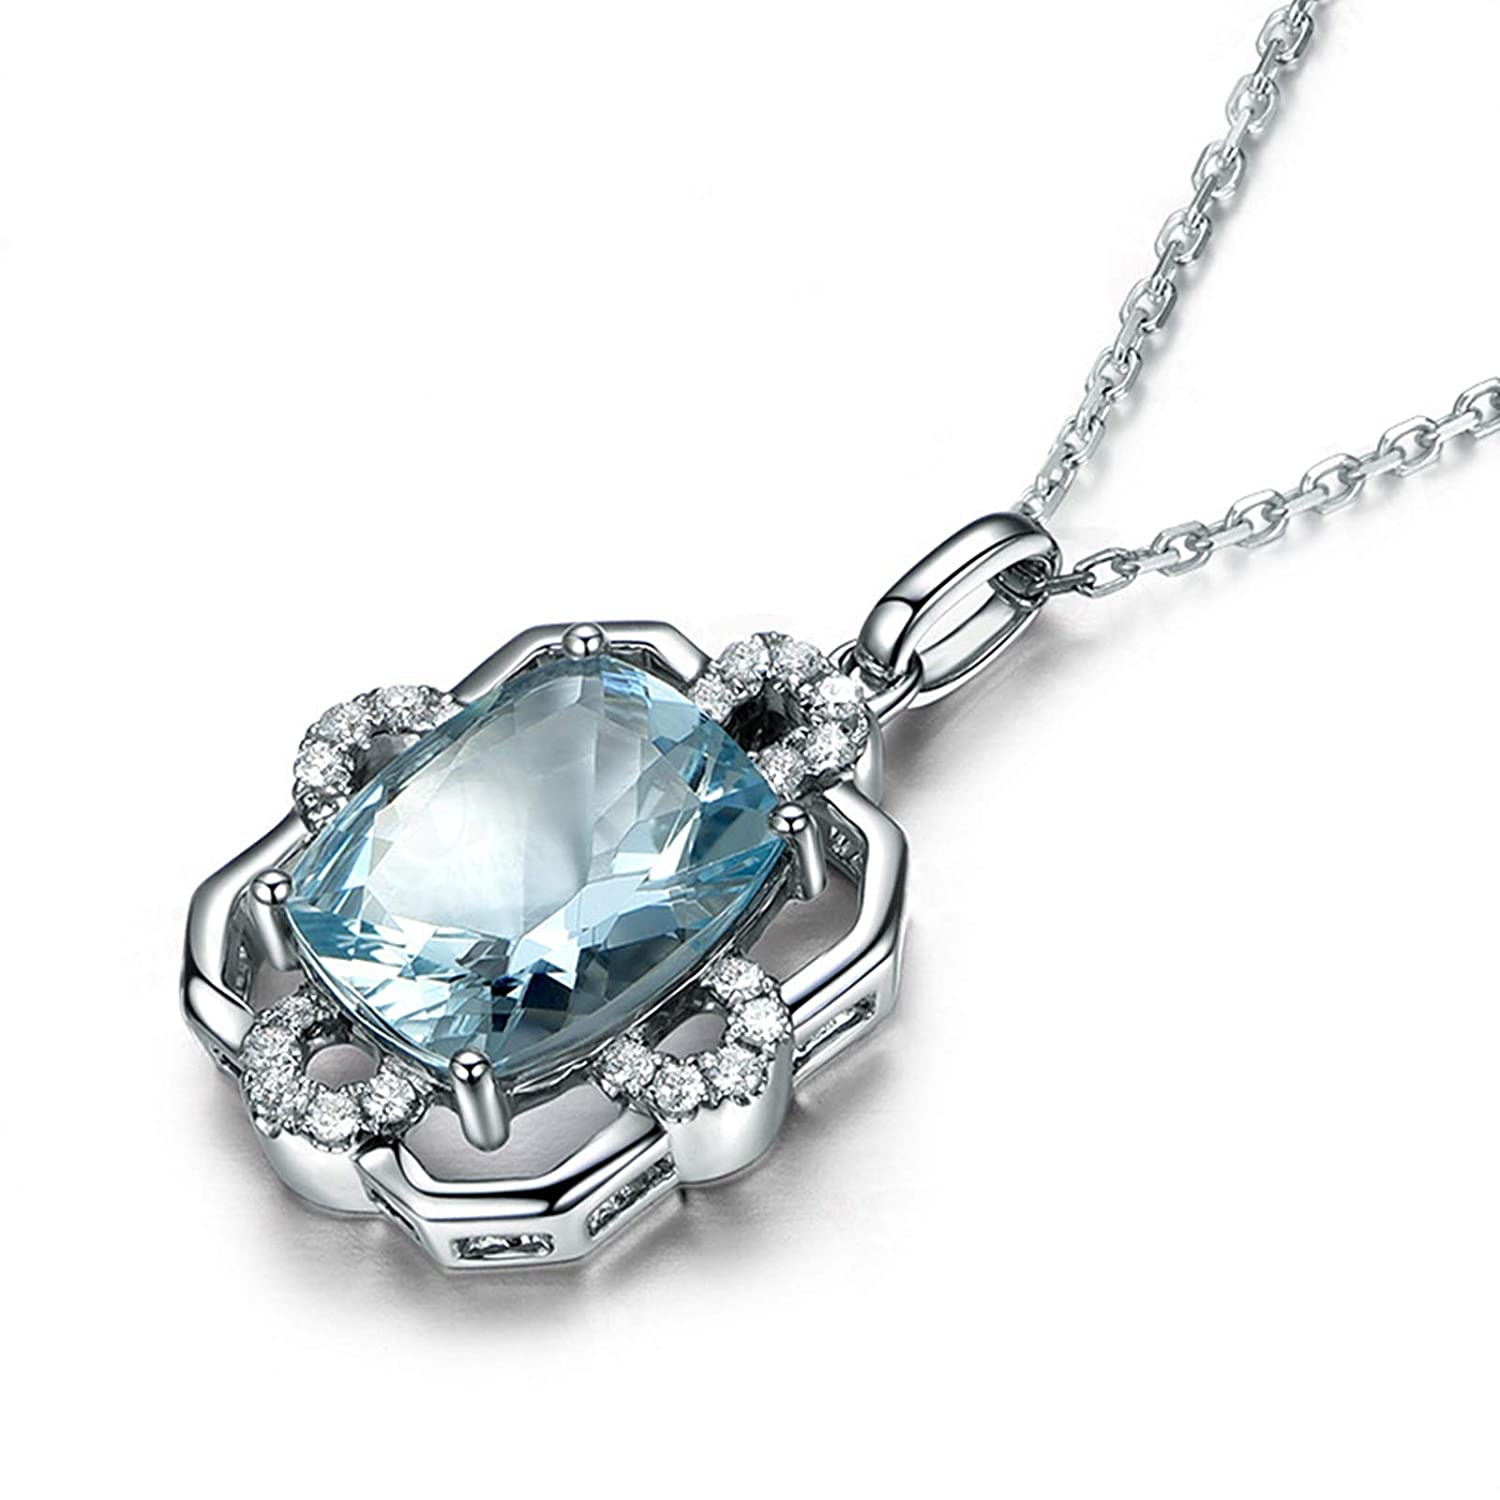 KnSam Silver Chains Jewelry Sterling Silver Necklace with Pendant Topaz Oval Cut 8x6MM